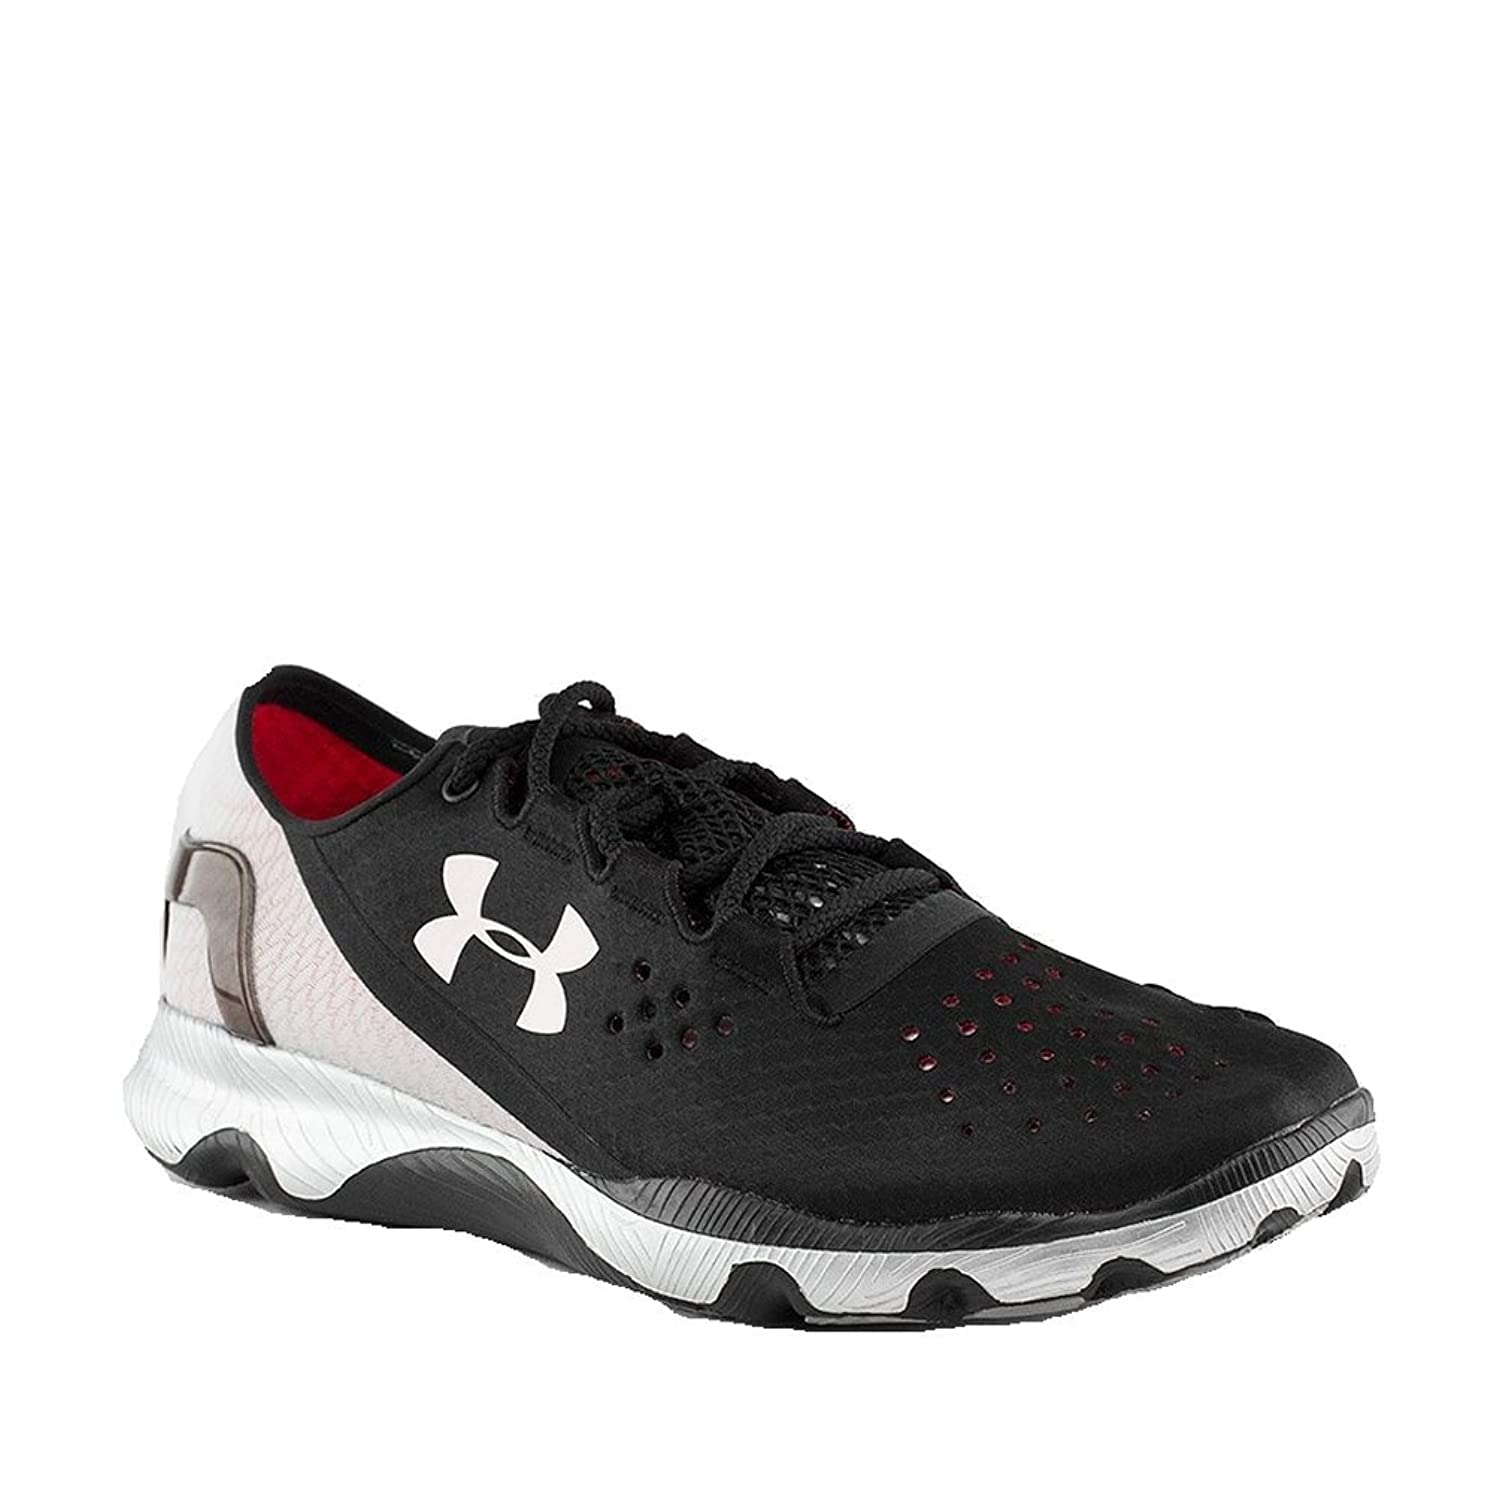 Under Armour Menns Joggesko Amazon 1KOFs